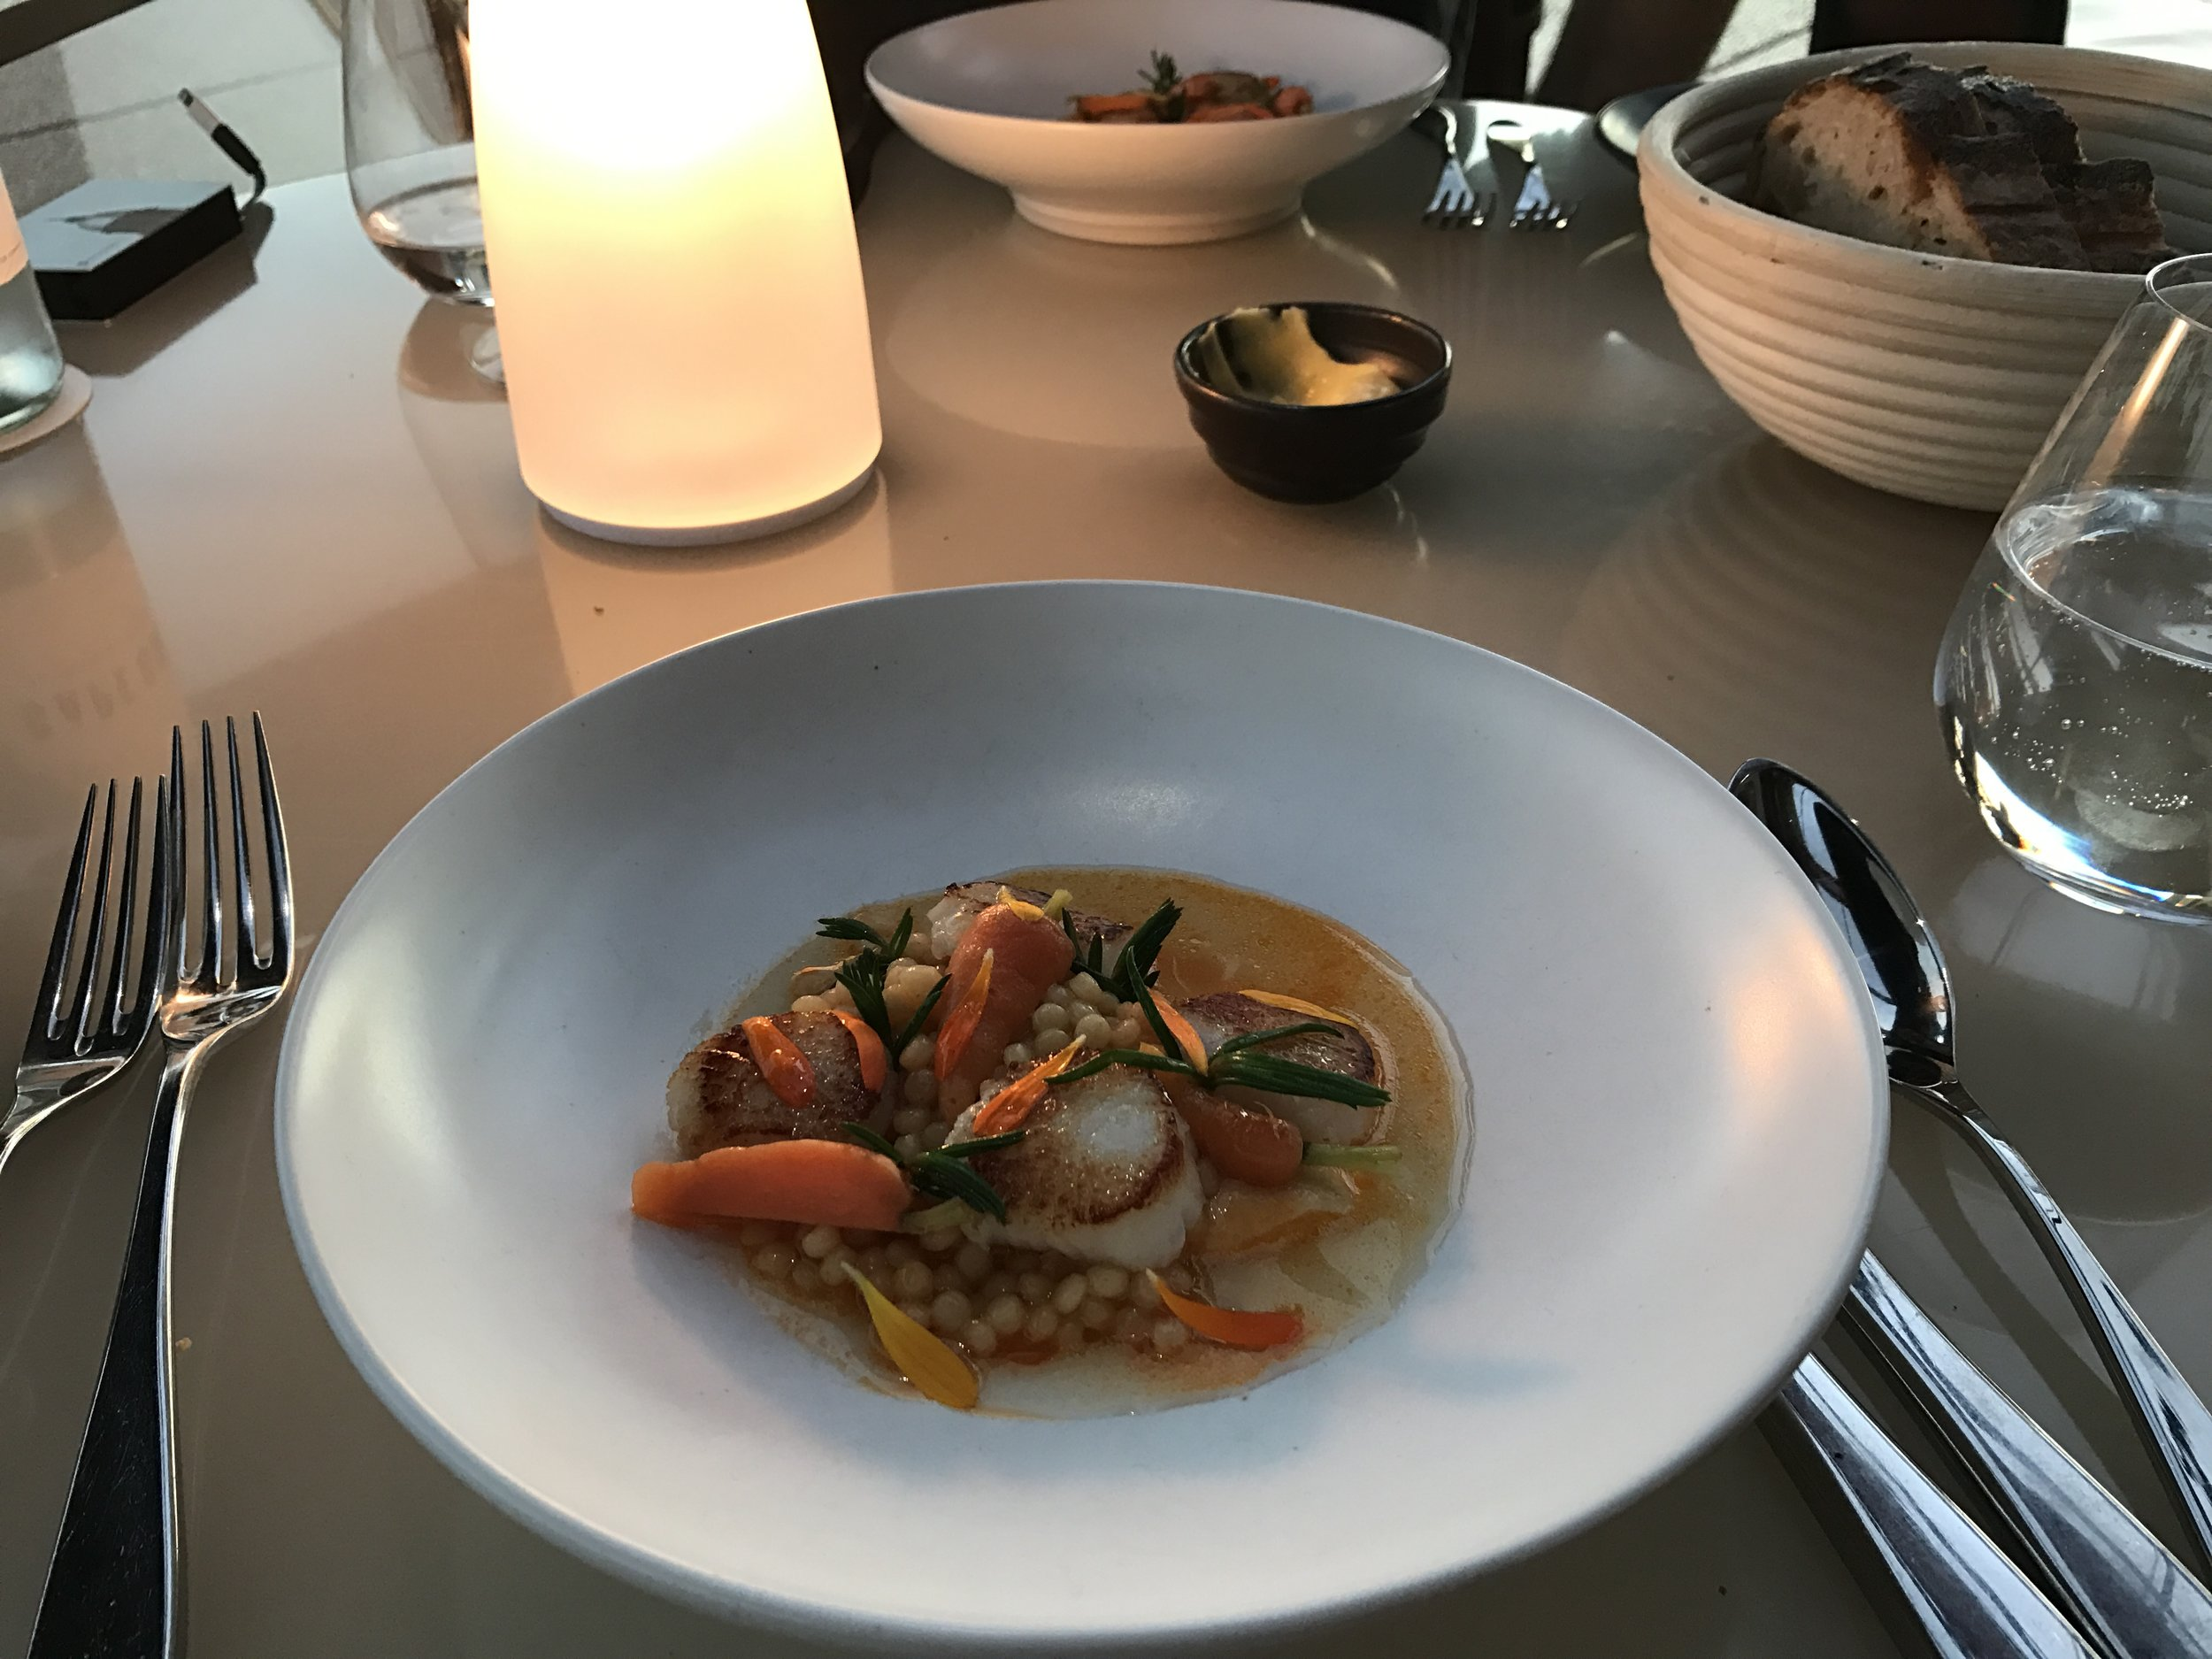 Hervey Bay scallops with Israeli couscous, young carrots, prawn custard, and chili oil.